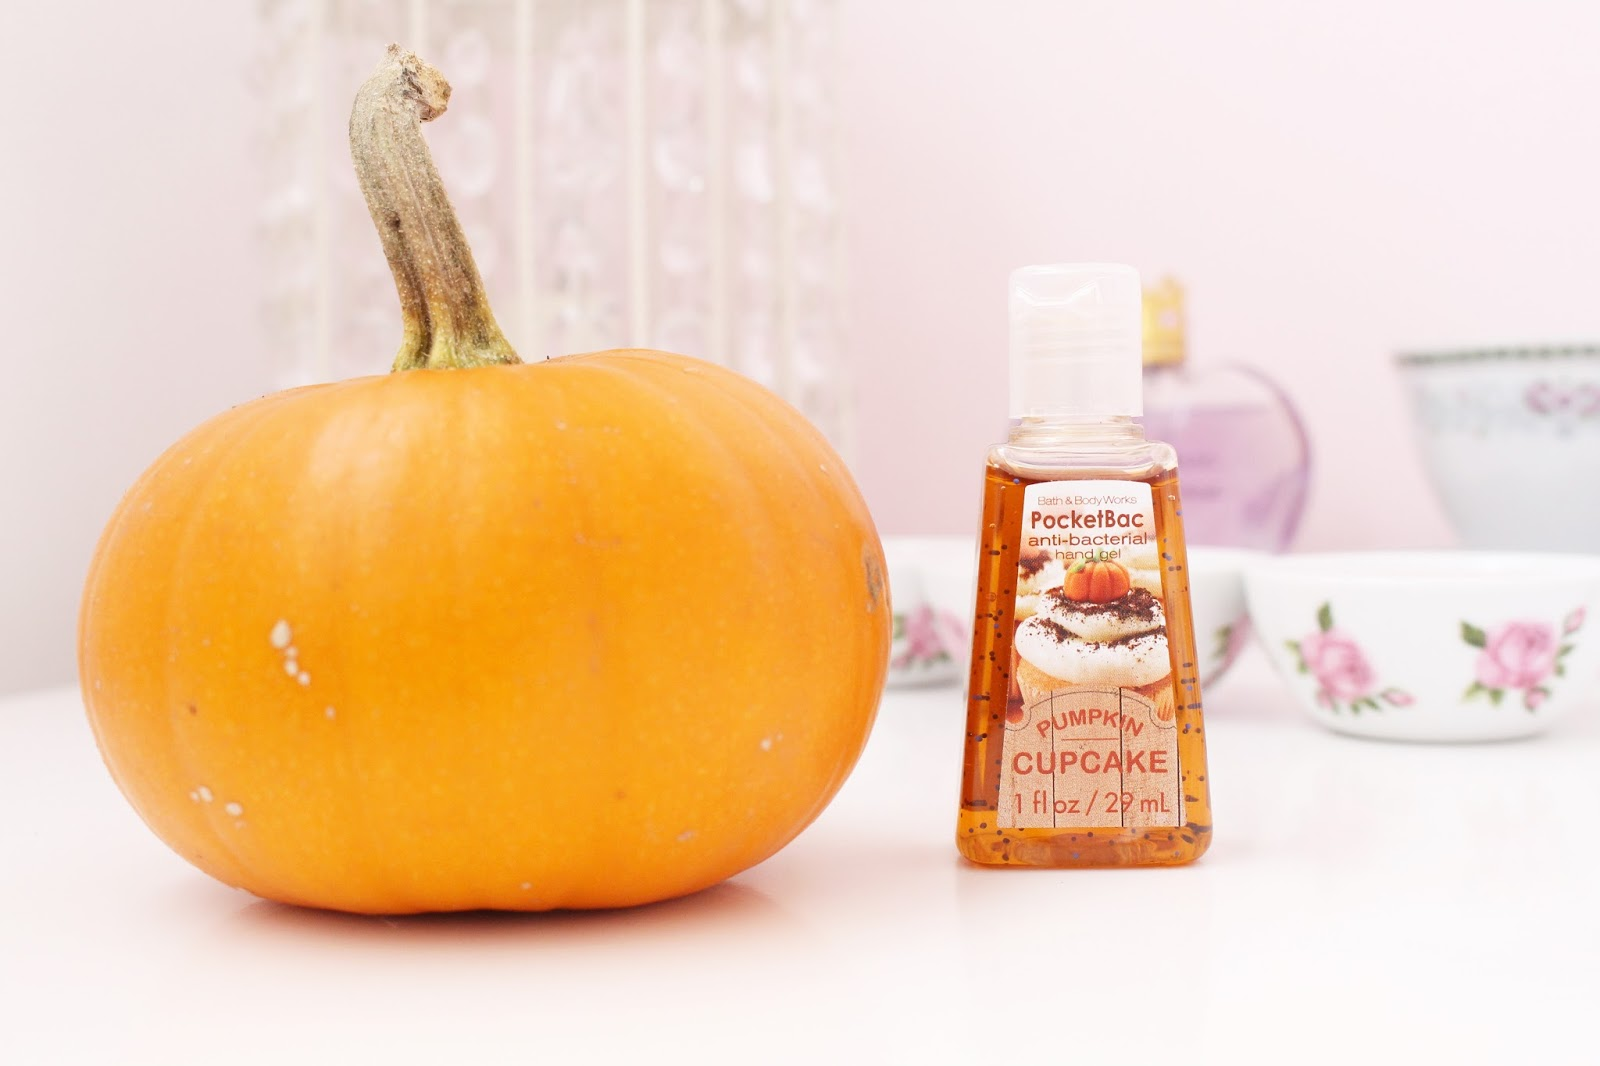 Bath & Body Works Pumpkin Cupcake PocketBac Review